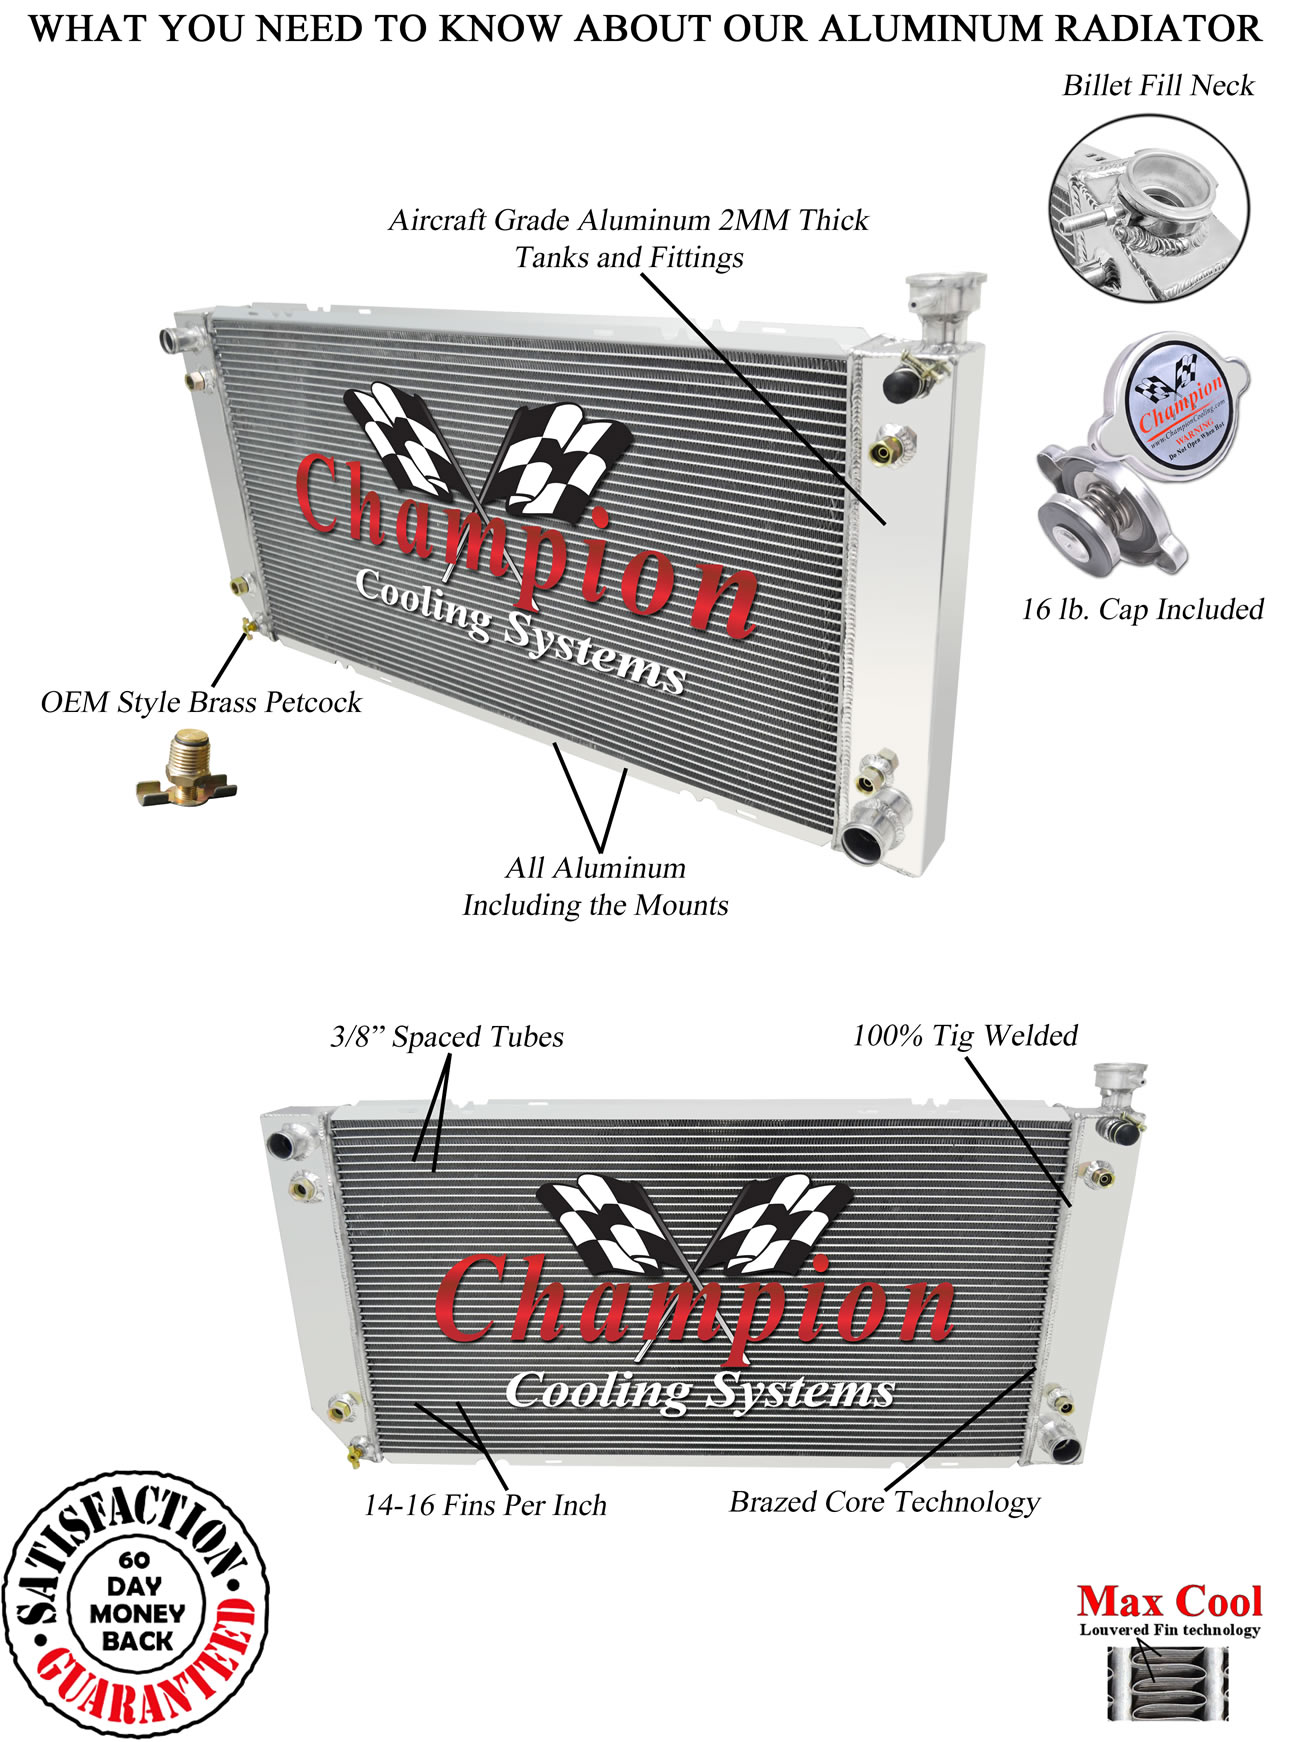 https://www.championcooling.com/photos/Photos%20White/Without%20Fans/1520/1520_dgrm_w.jpg